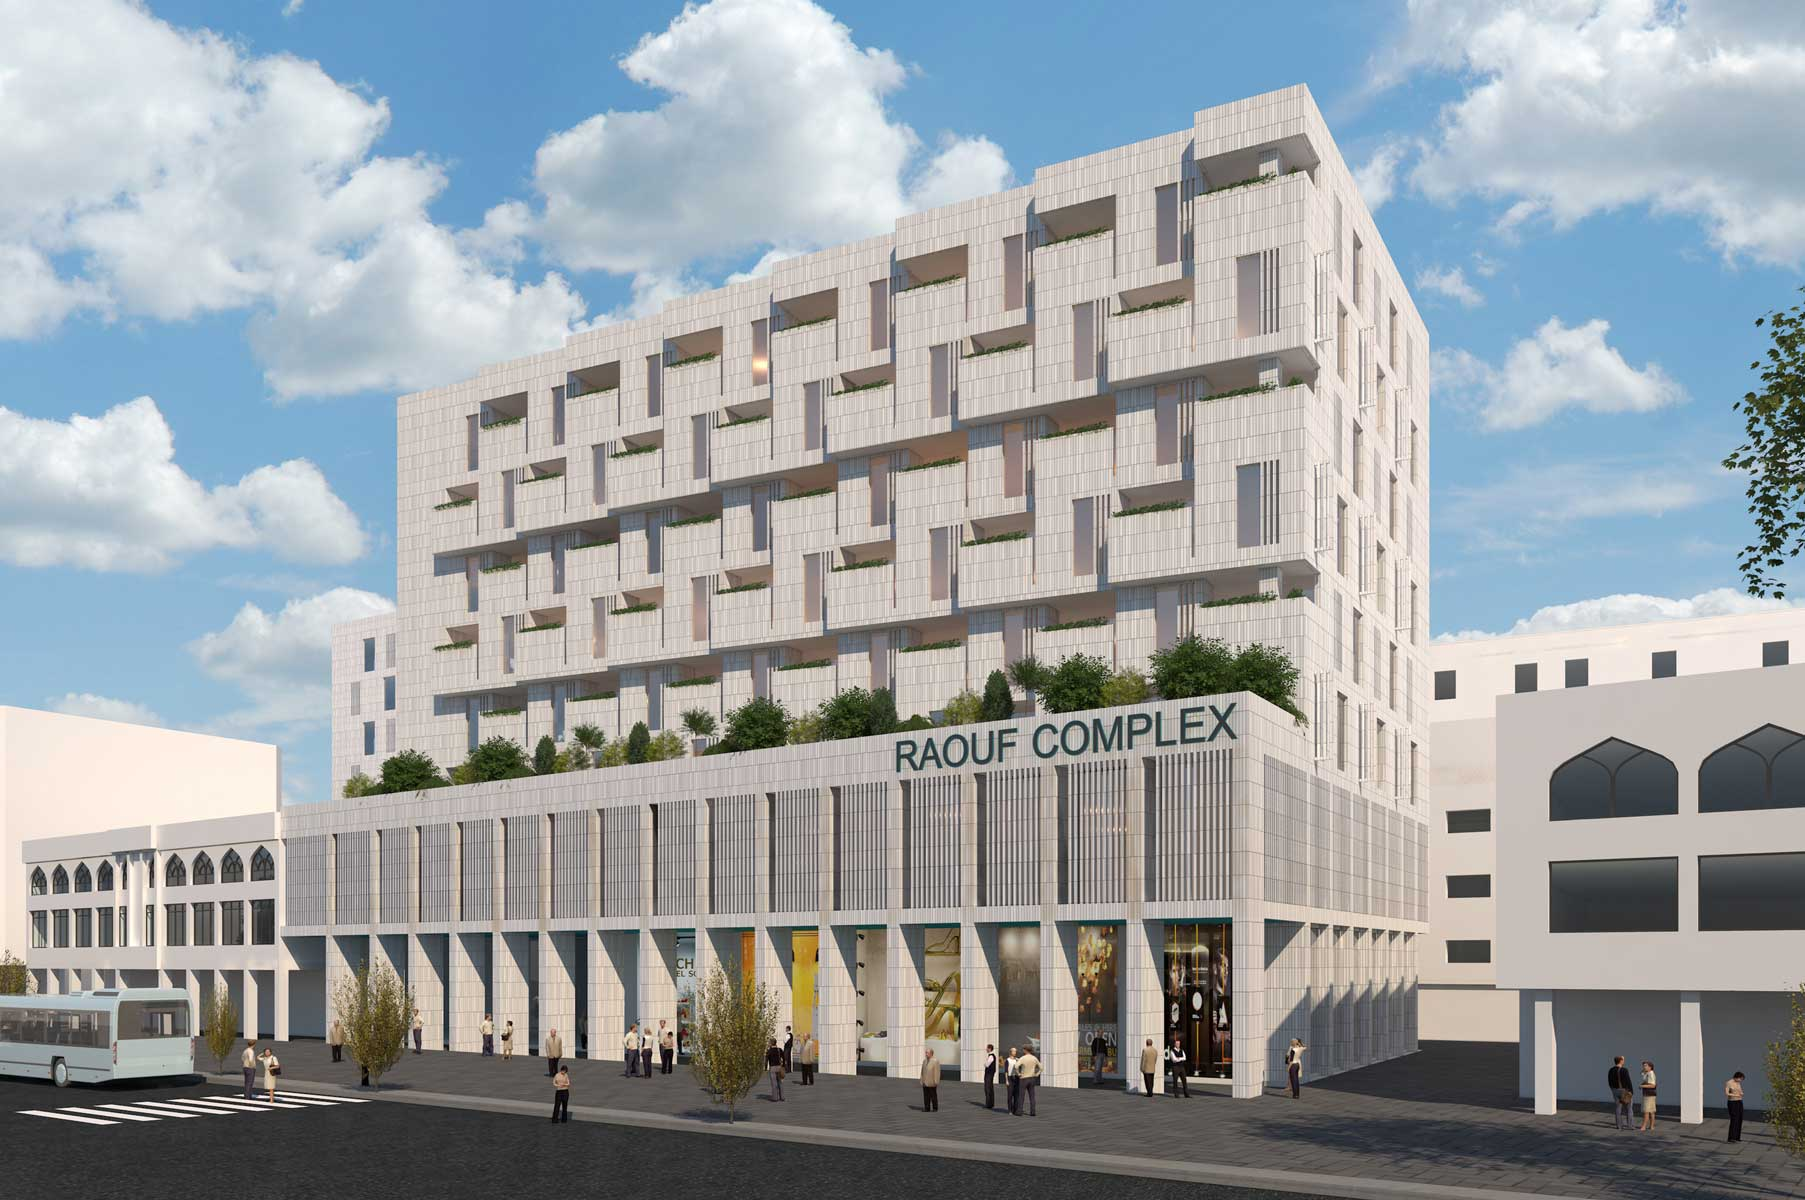 12- Raouf Mixed-Use Building